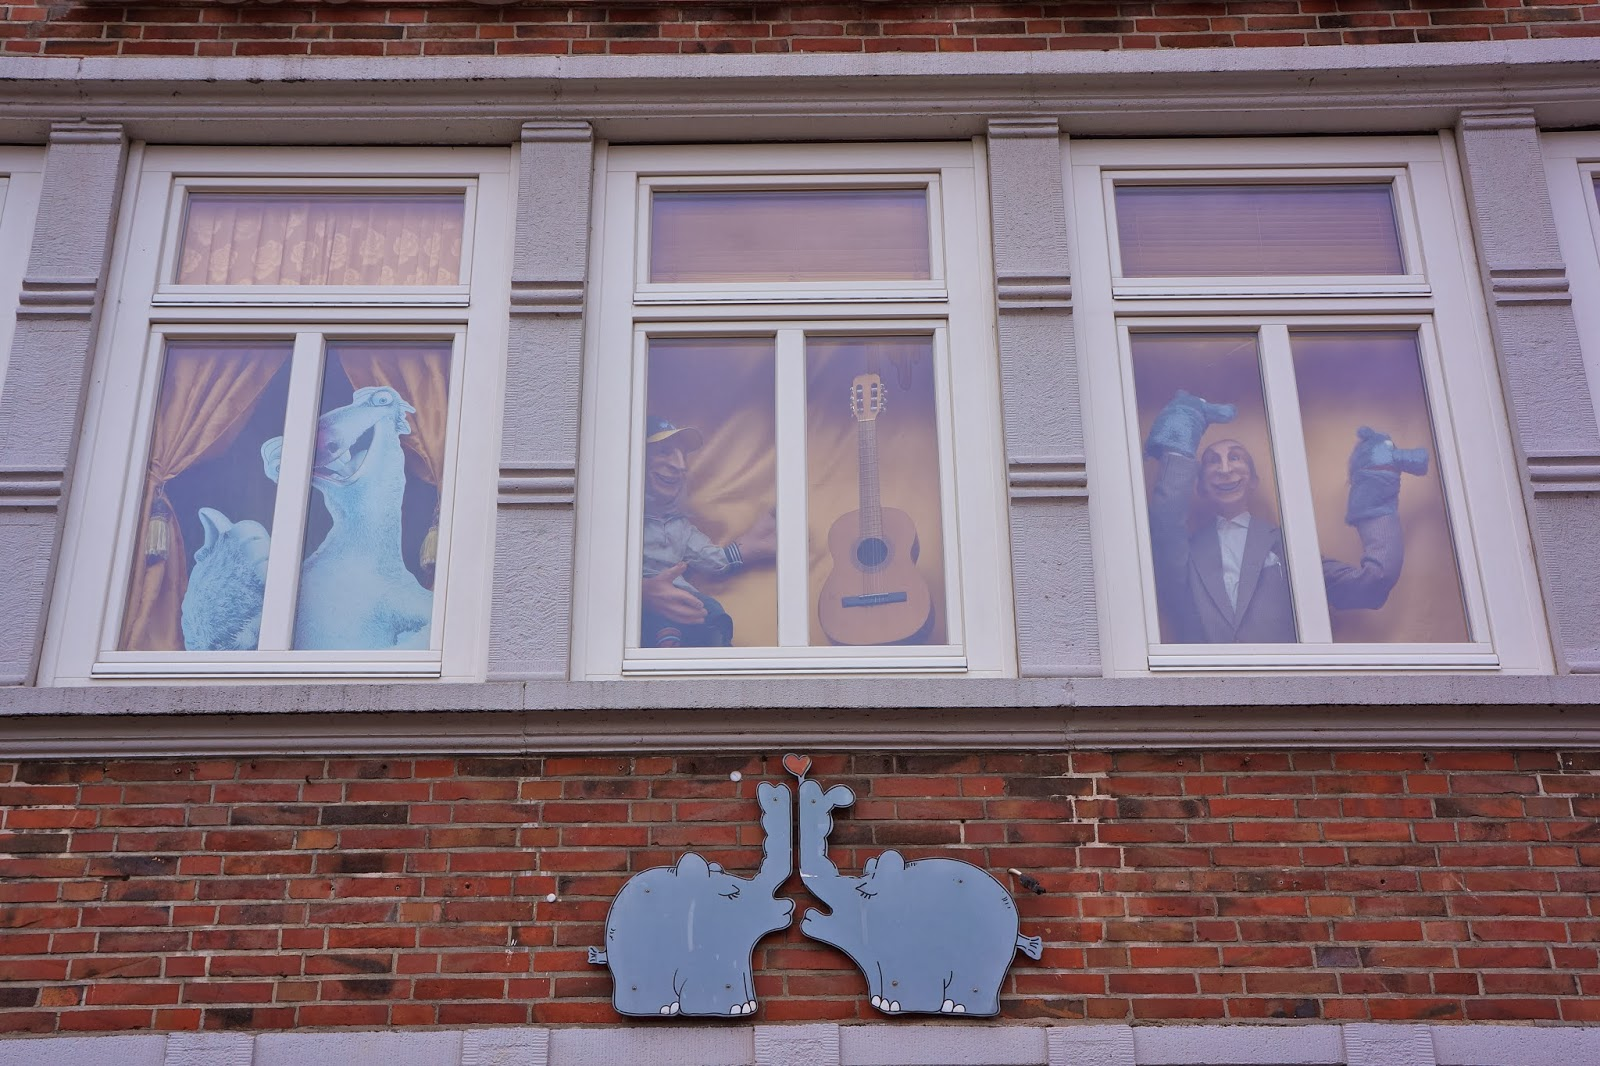 Picture of Ottifants on the facade of Dat Otto Huus in Emden, Germany.